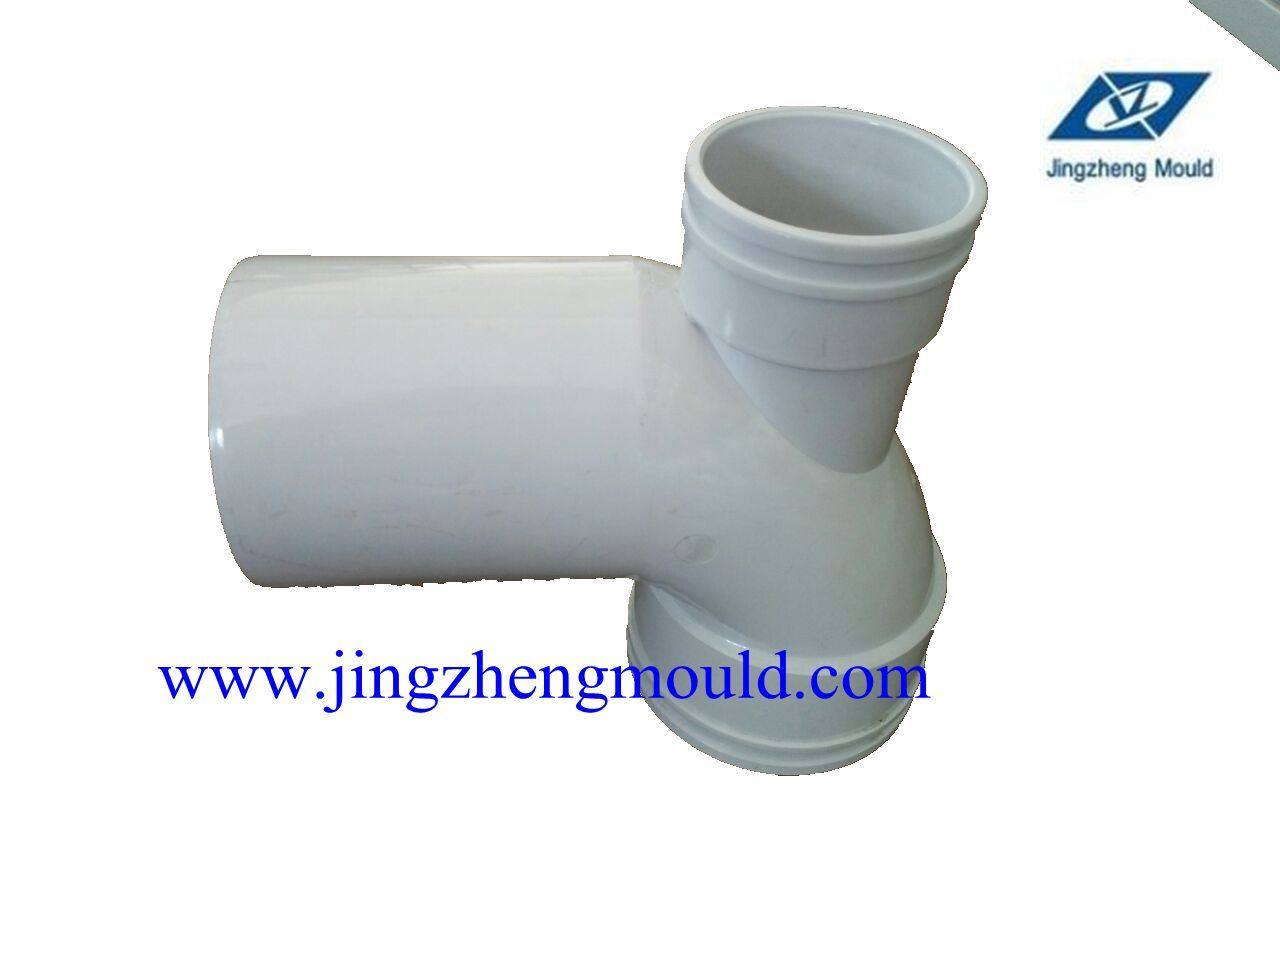 Pvc drainage fittings elbow mould moulding with stainless